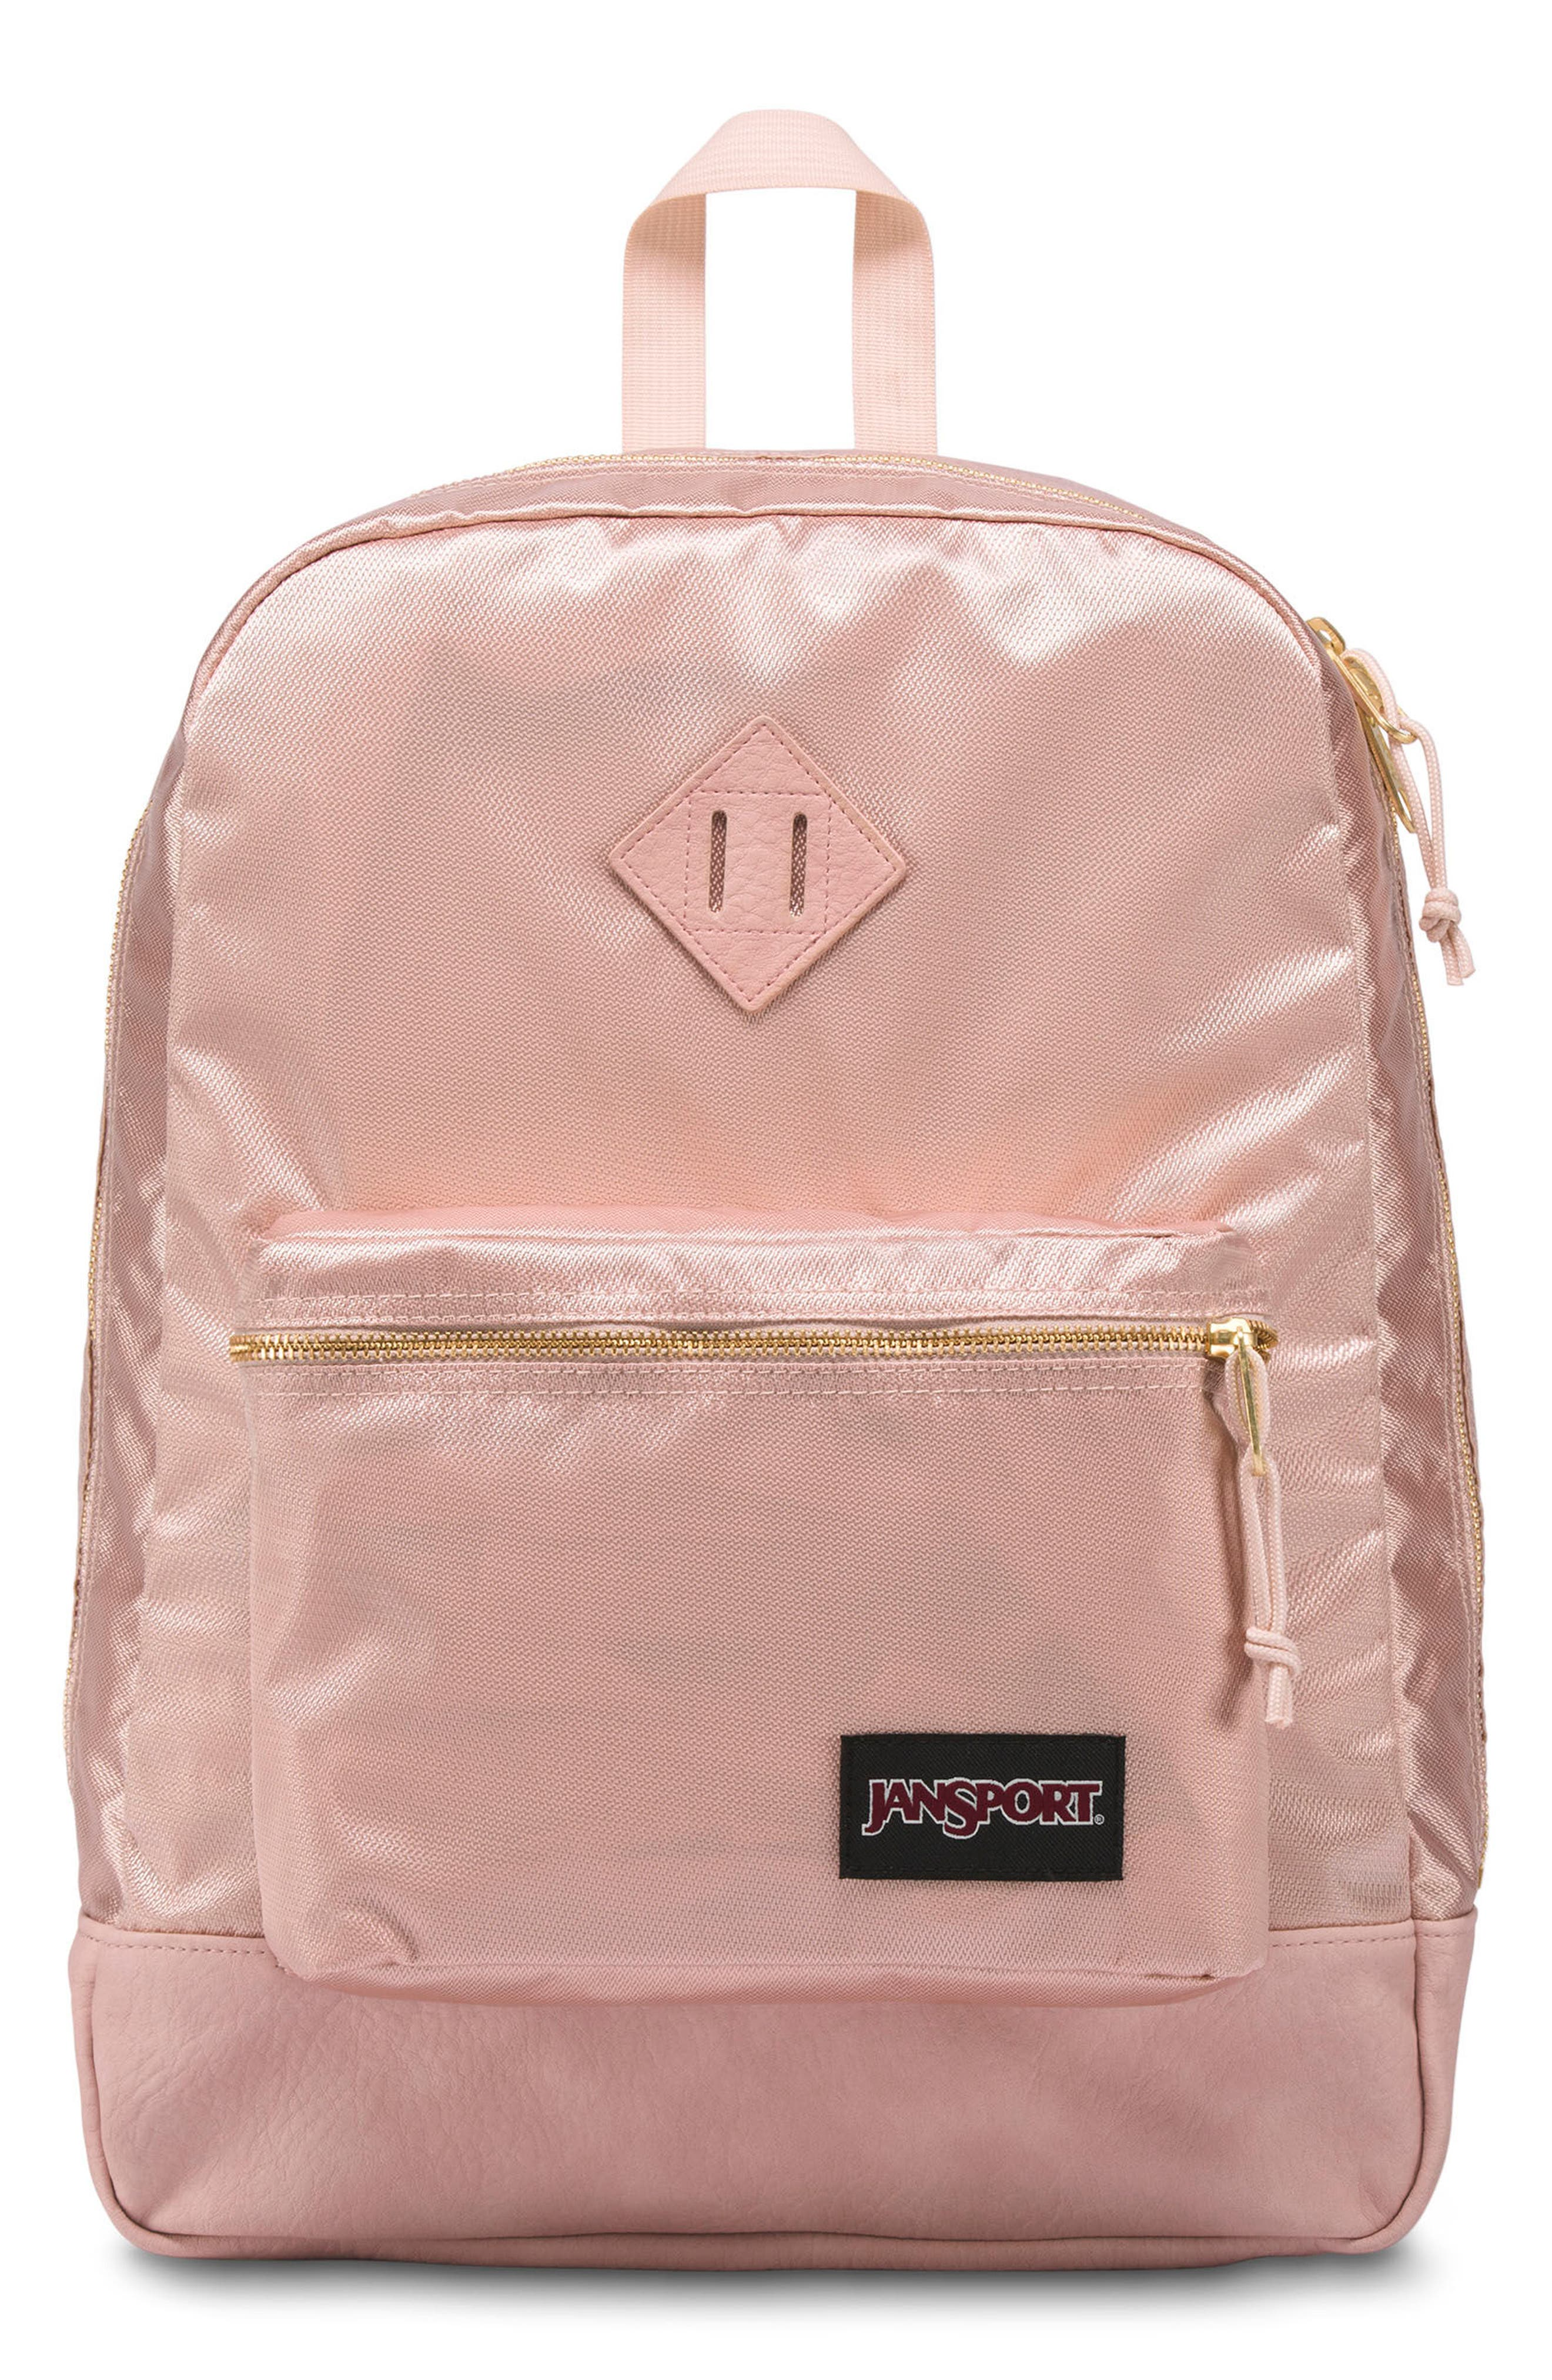 JANSPORT SUPER FX GYM BACKPACK - PINK